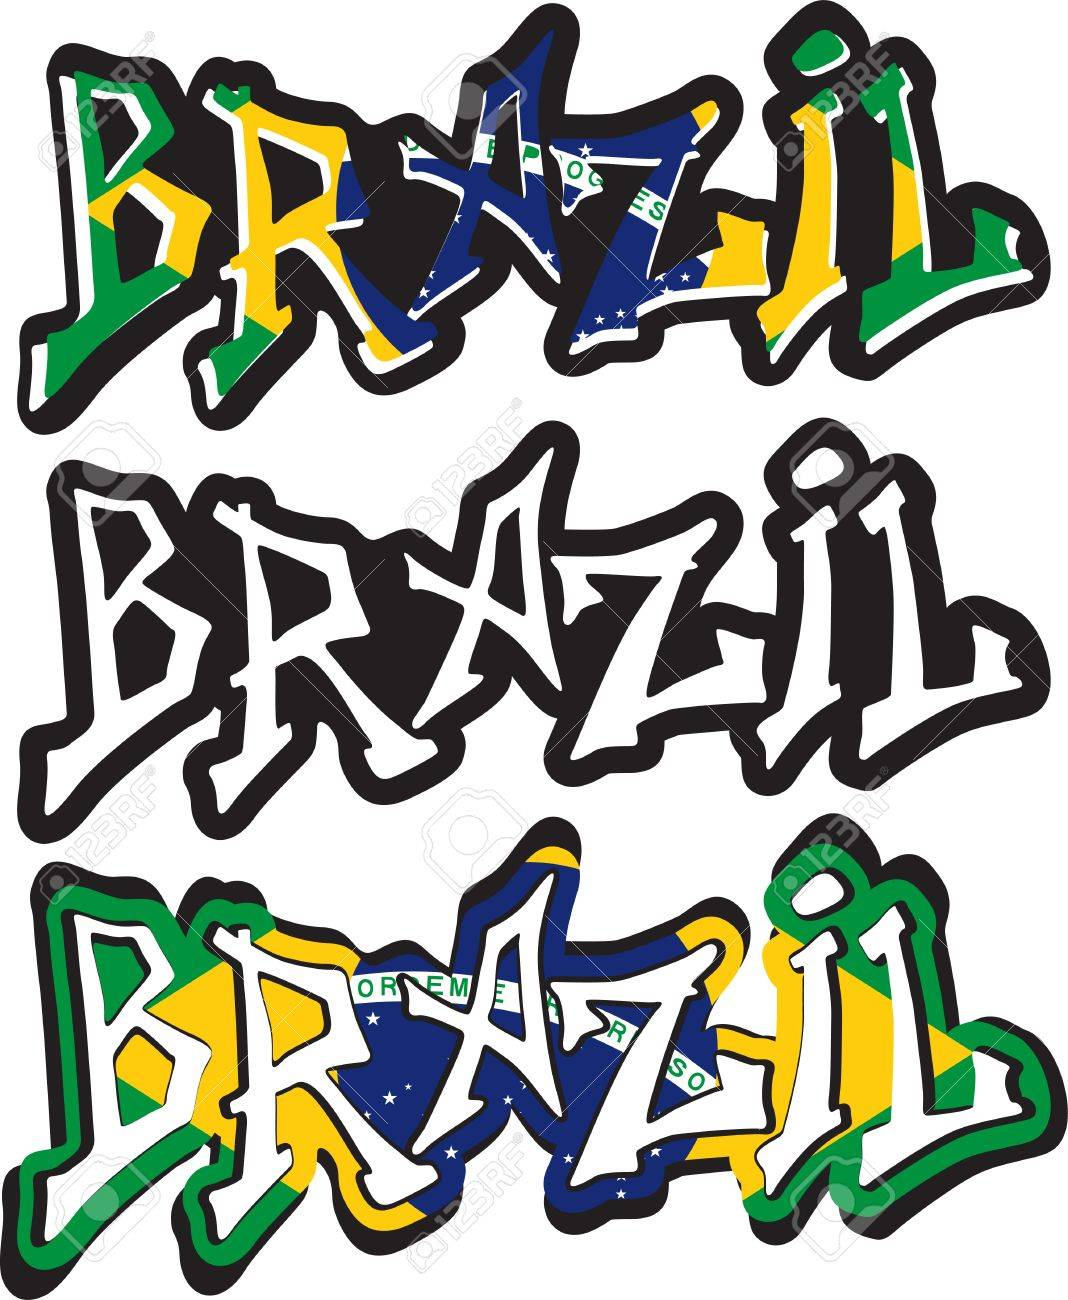 Brazil Word Graffiti Different Style Vector Image